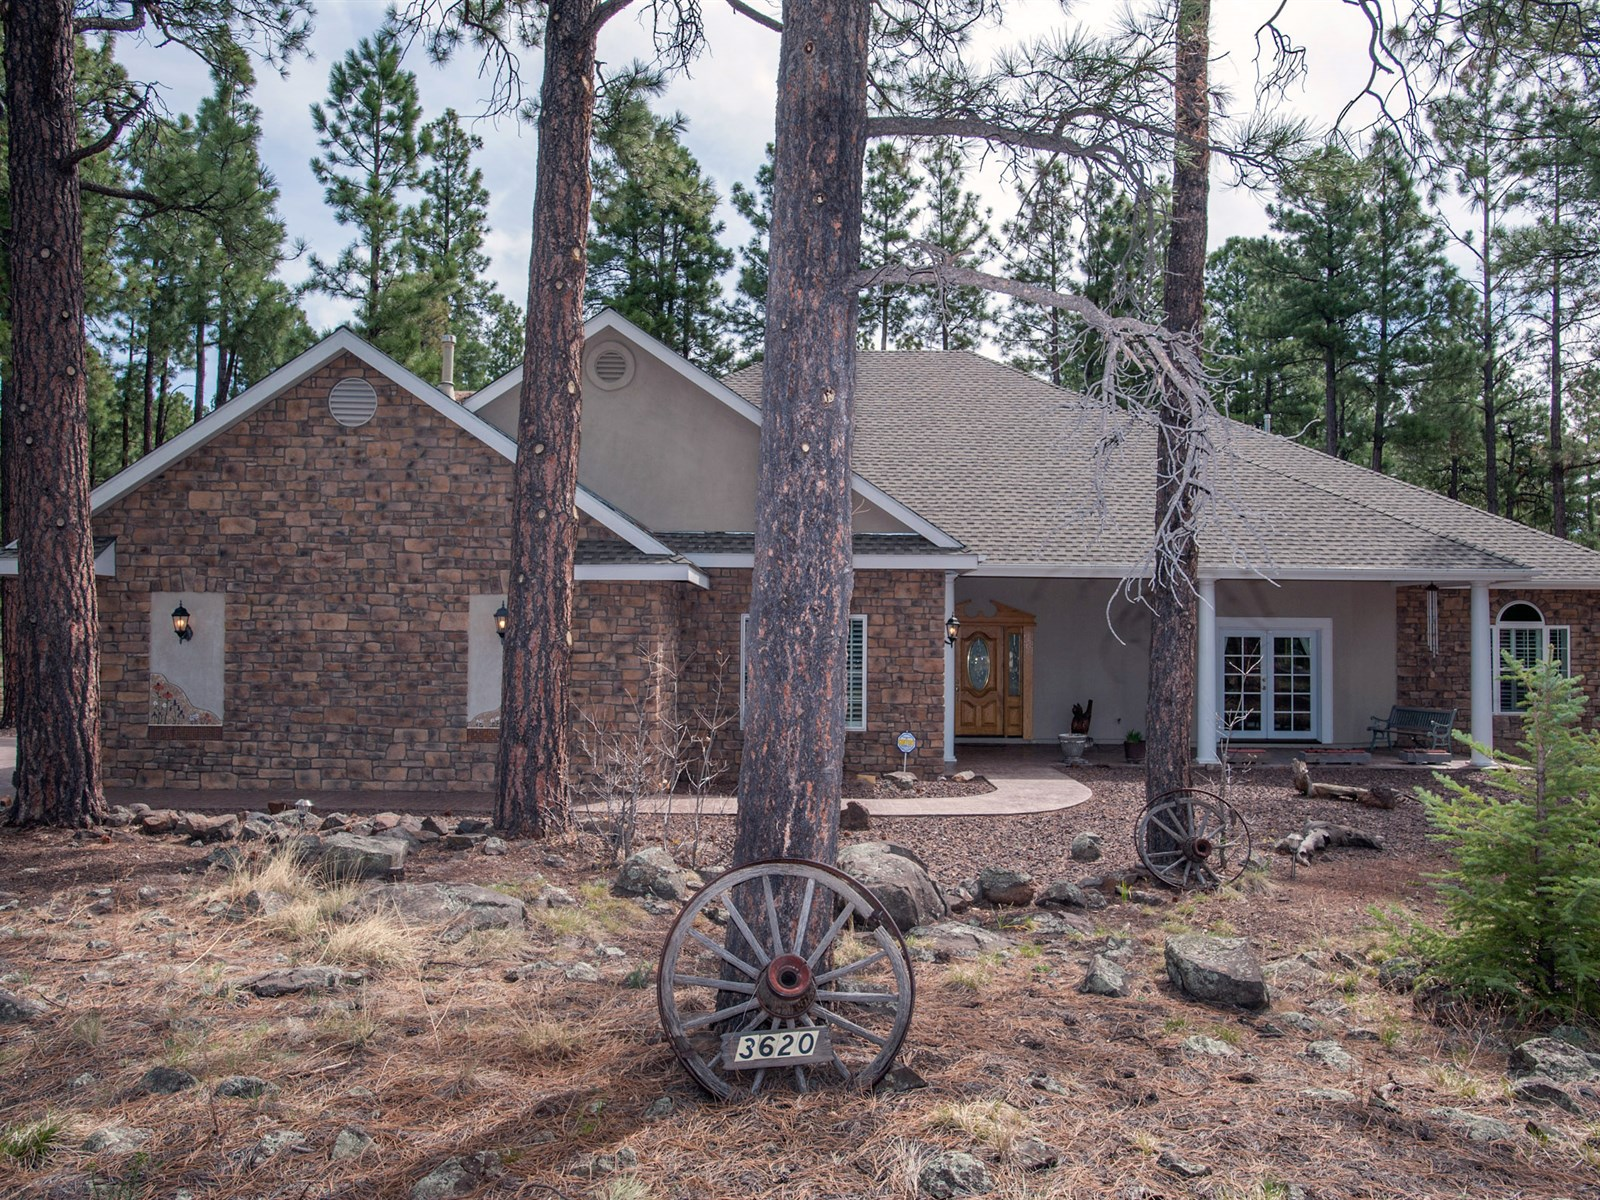 Moradia para Venda às Gorgeous Single Level Home 3620 N Langdale TRL Flagstaff, Arizona 86001 Estados Unidos